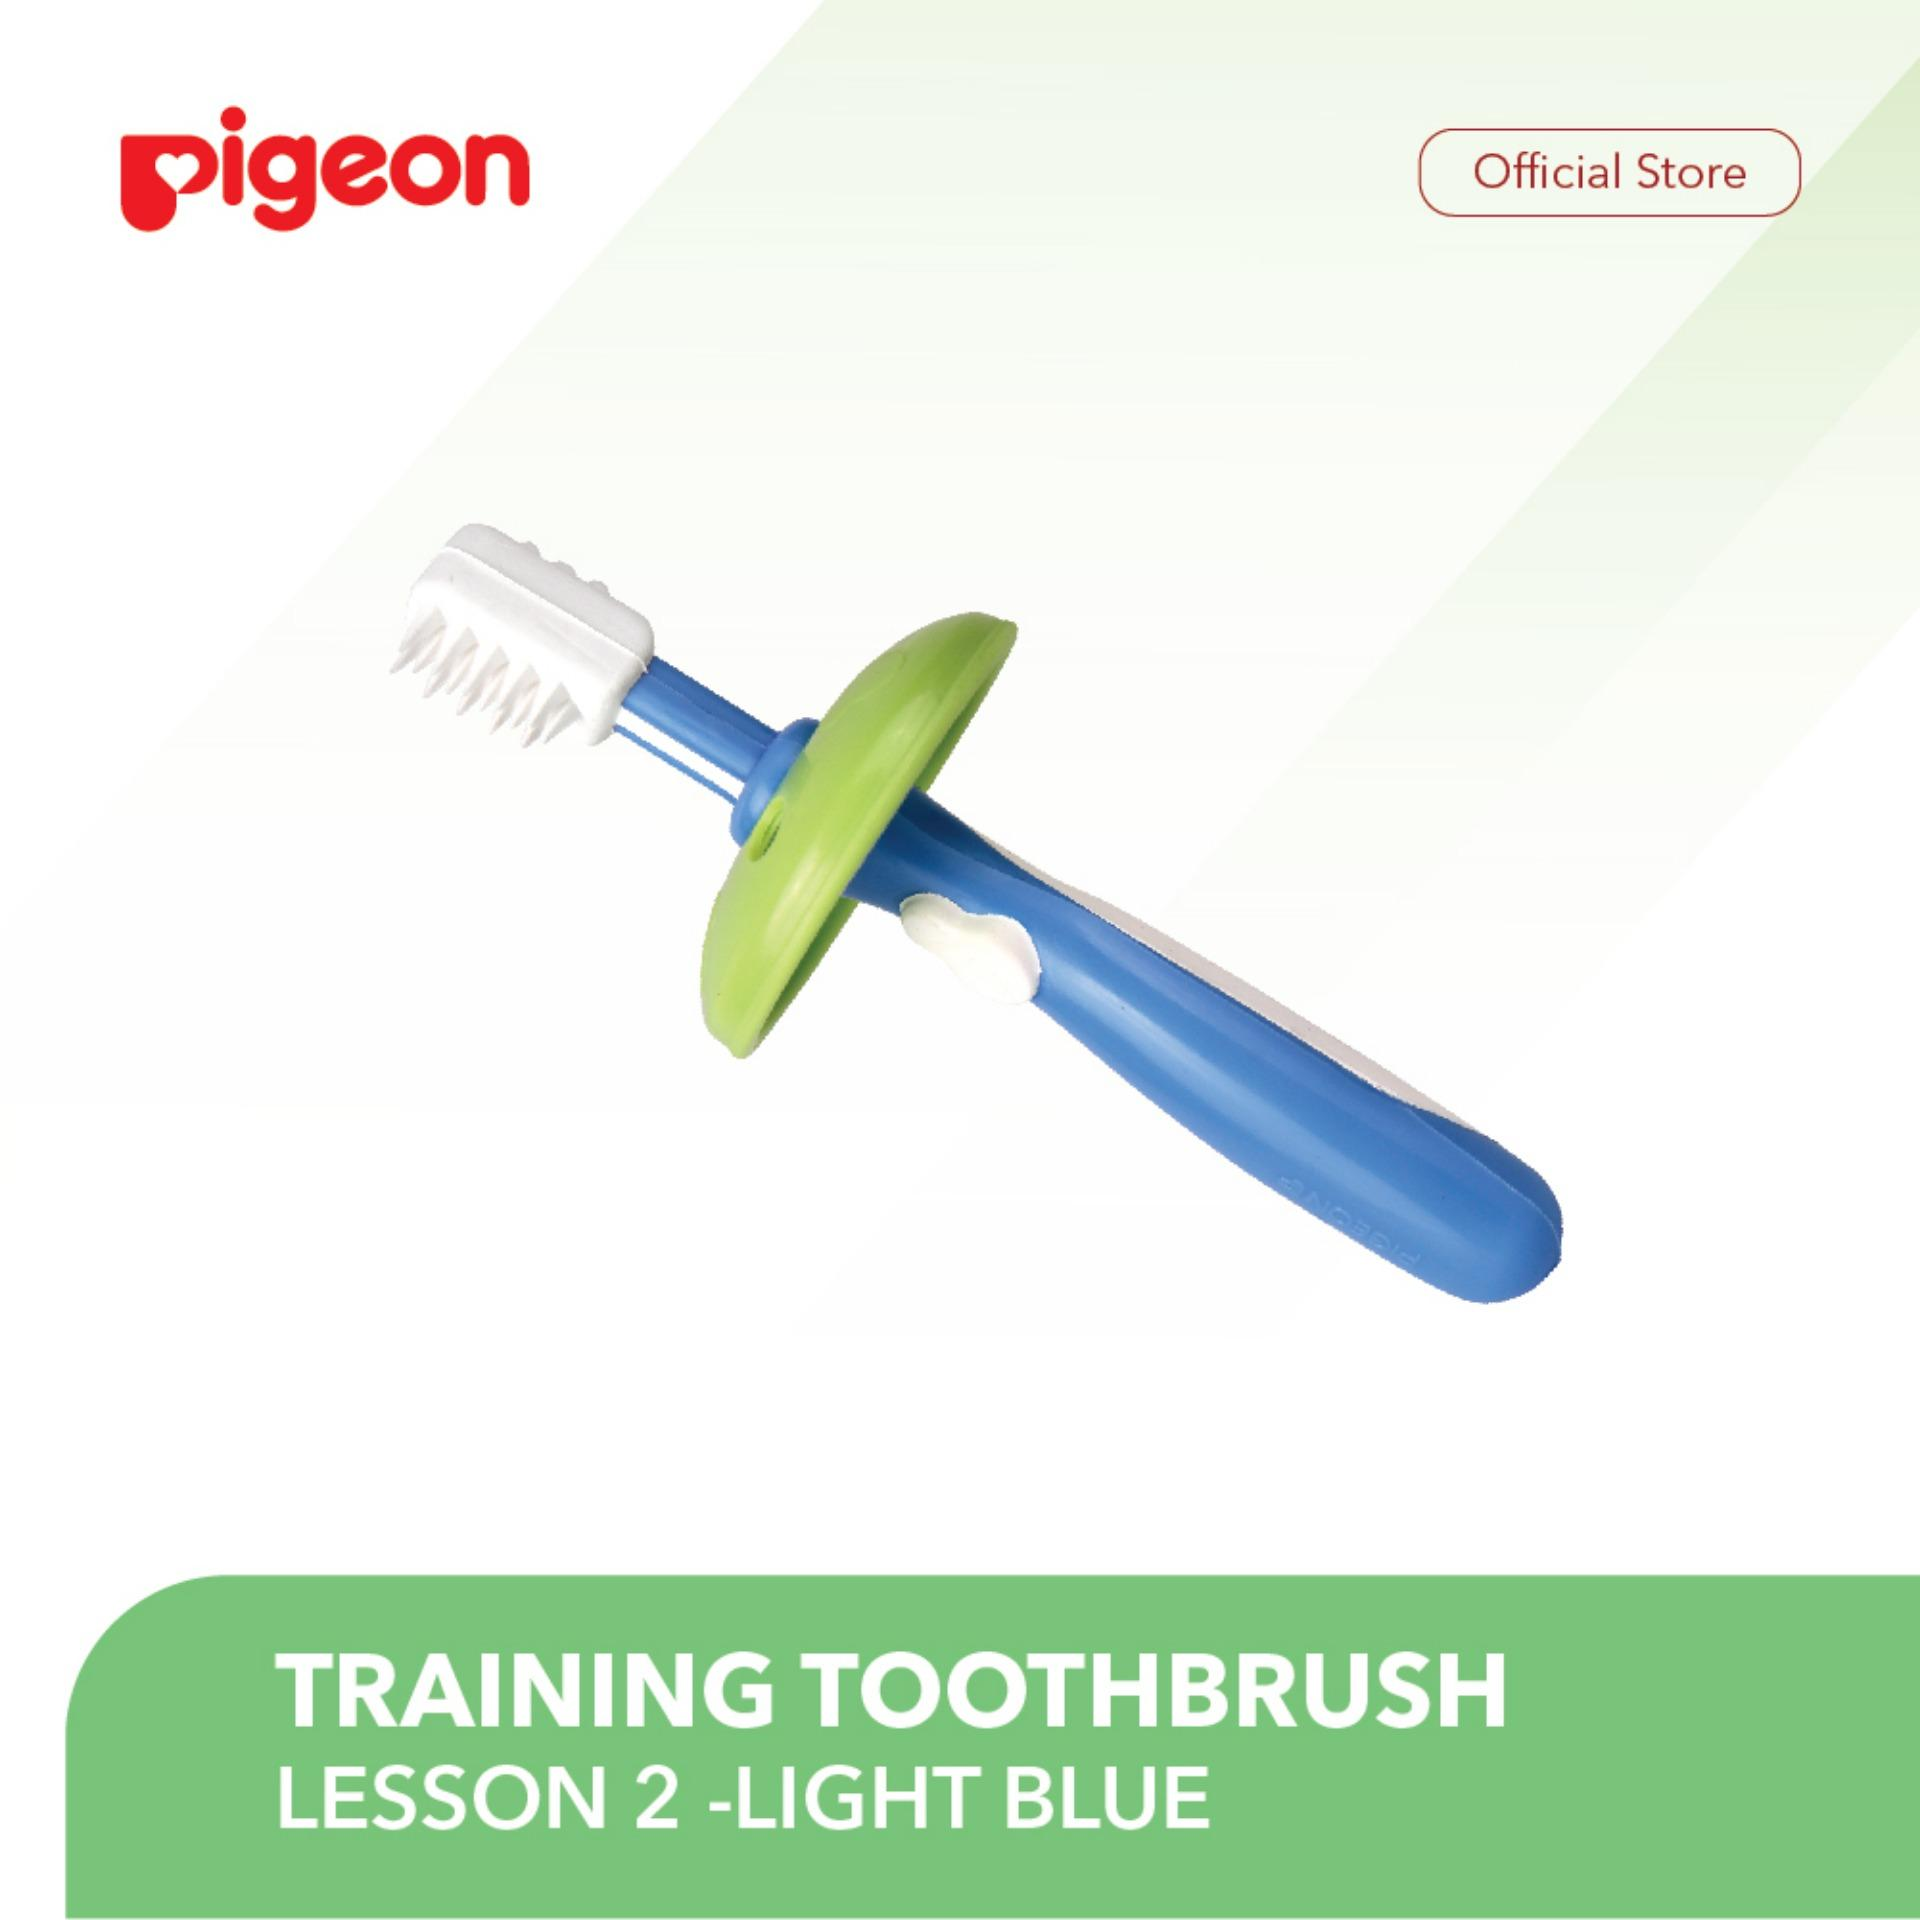 Pigeon Training Toothbrush Lesson 2 - Light Blue By Pigeon Indonesia.